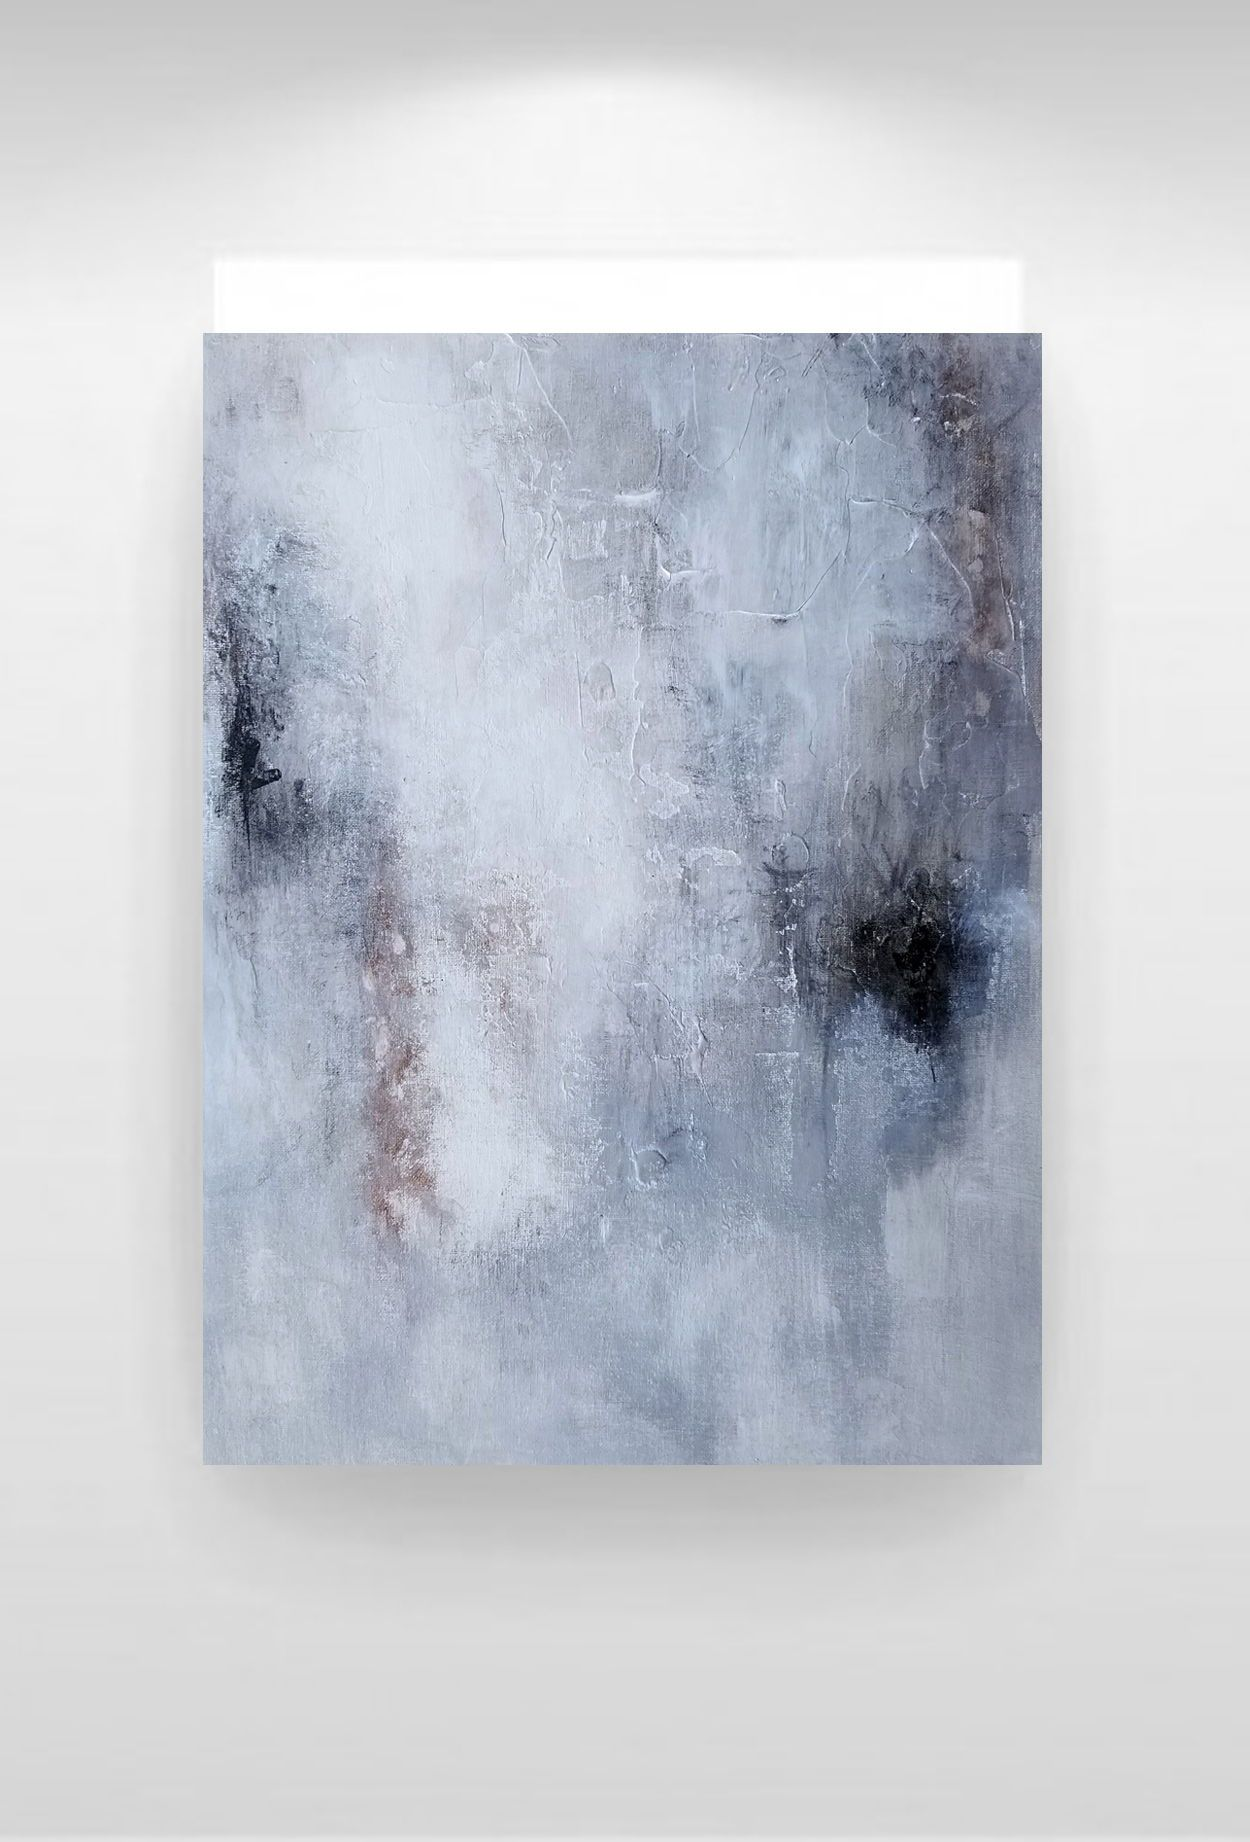 Modern Abstract Painting Black And White Decor Wall Hanging Affordable Art Available On Etsy Https Abstract Art For Sale Abstract Wall Art Buy Art Artworks